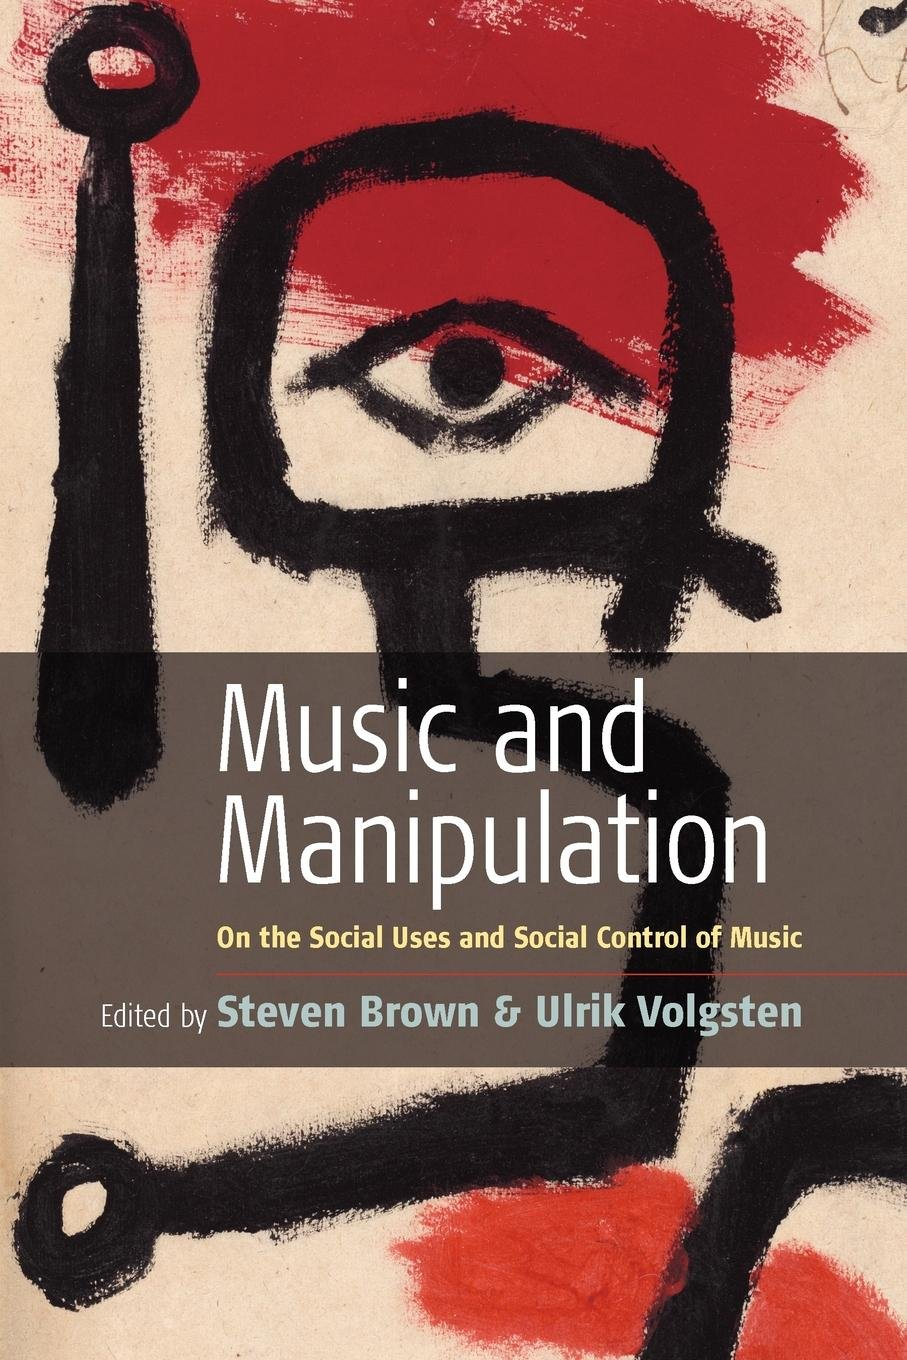 Download Music and Manipulation: On the Social Uses and Social Control of Music ebook